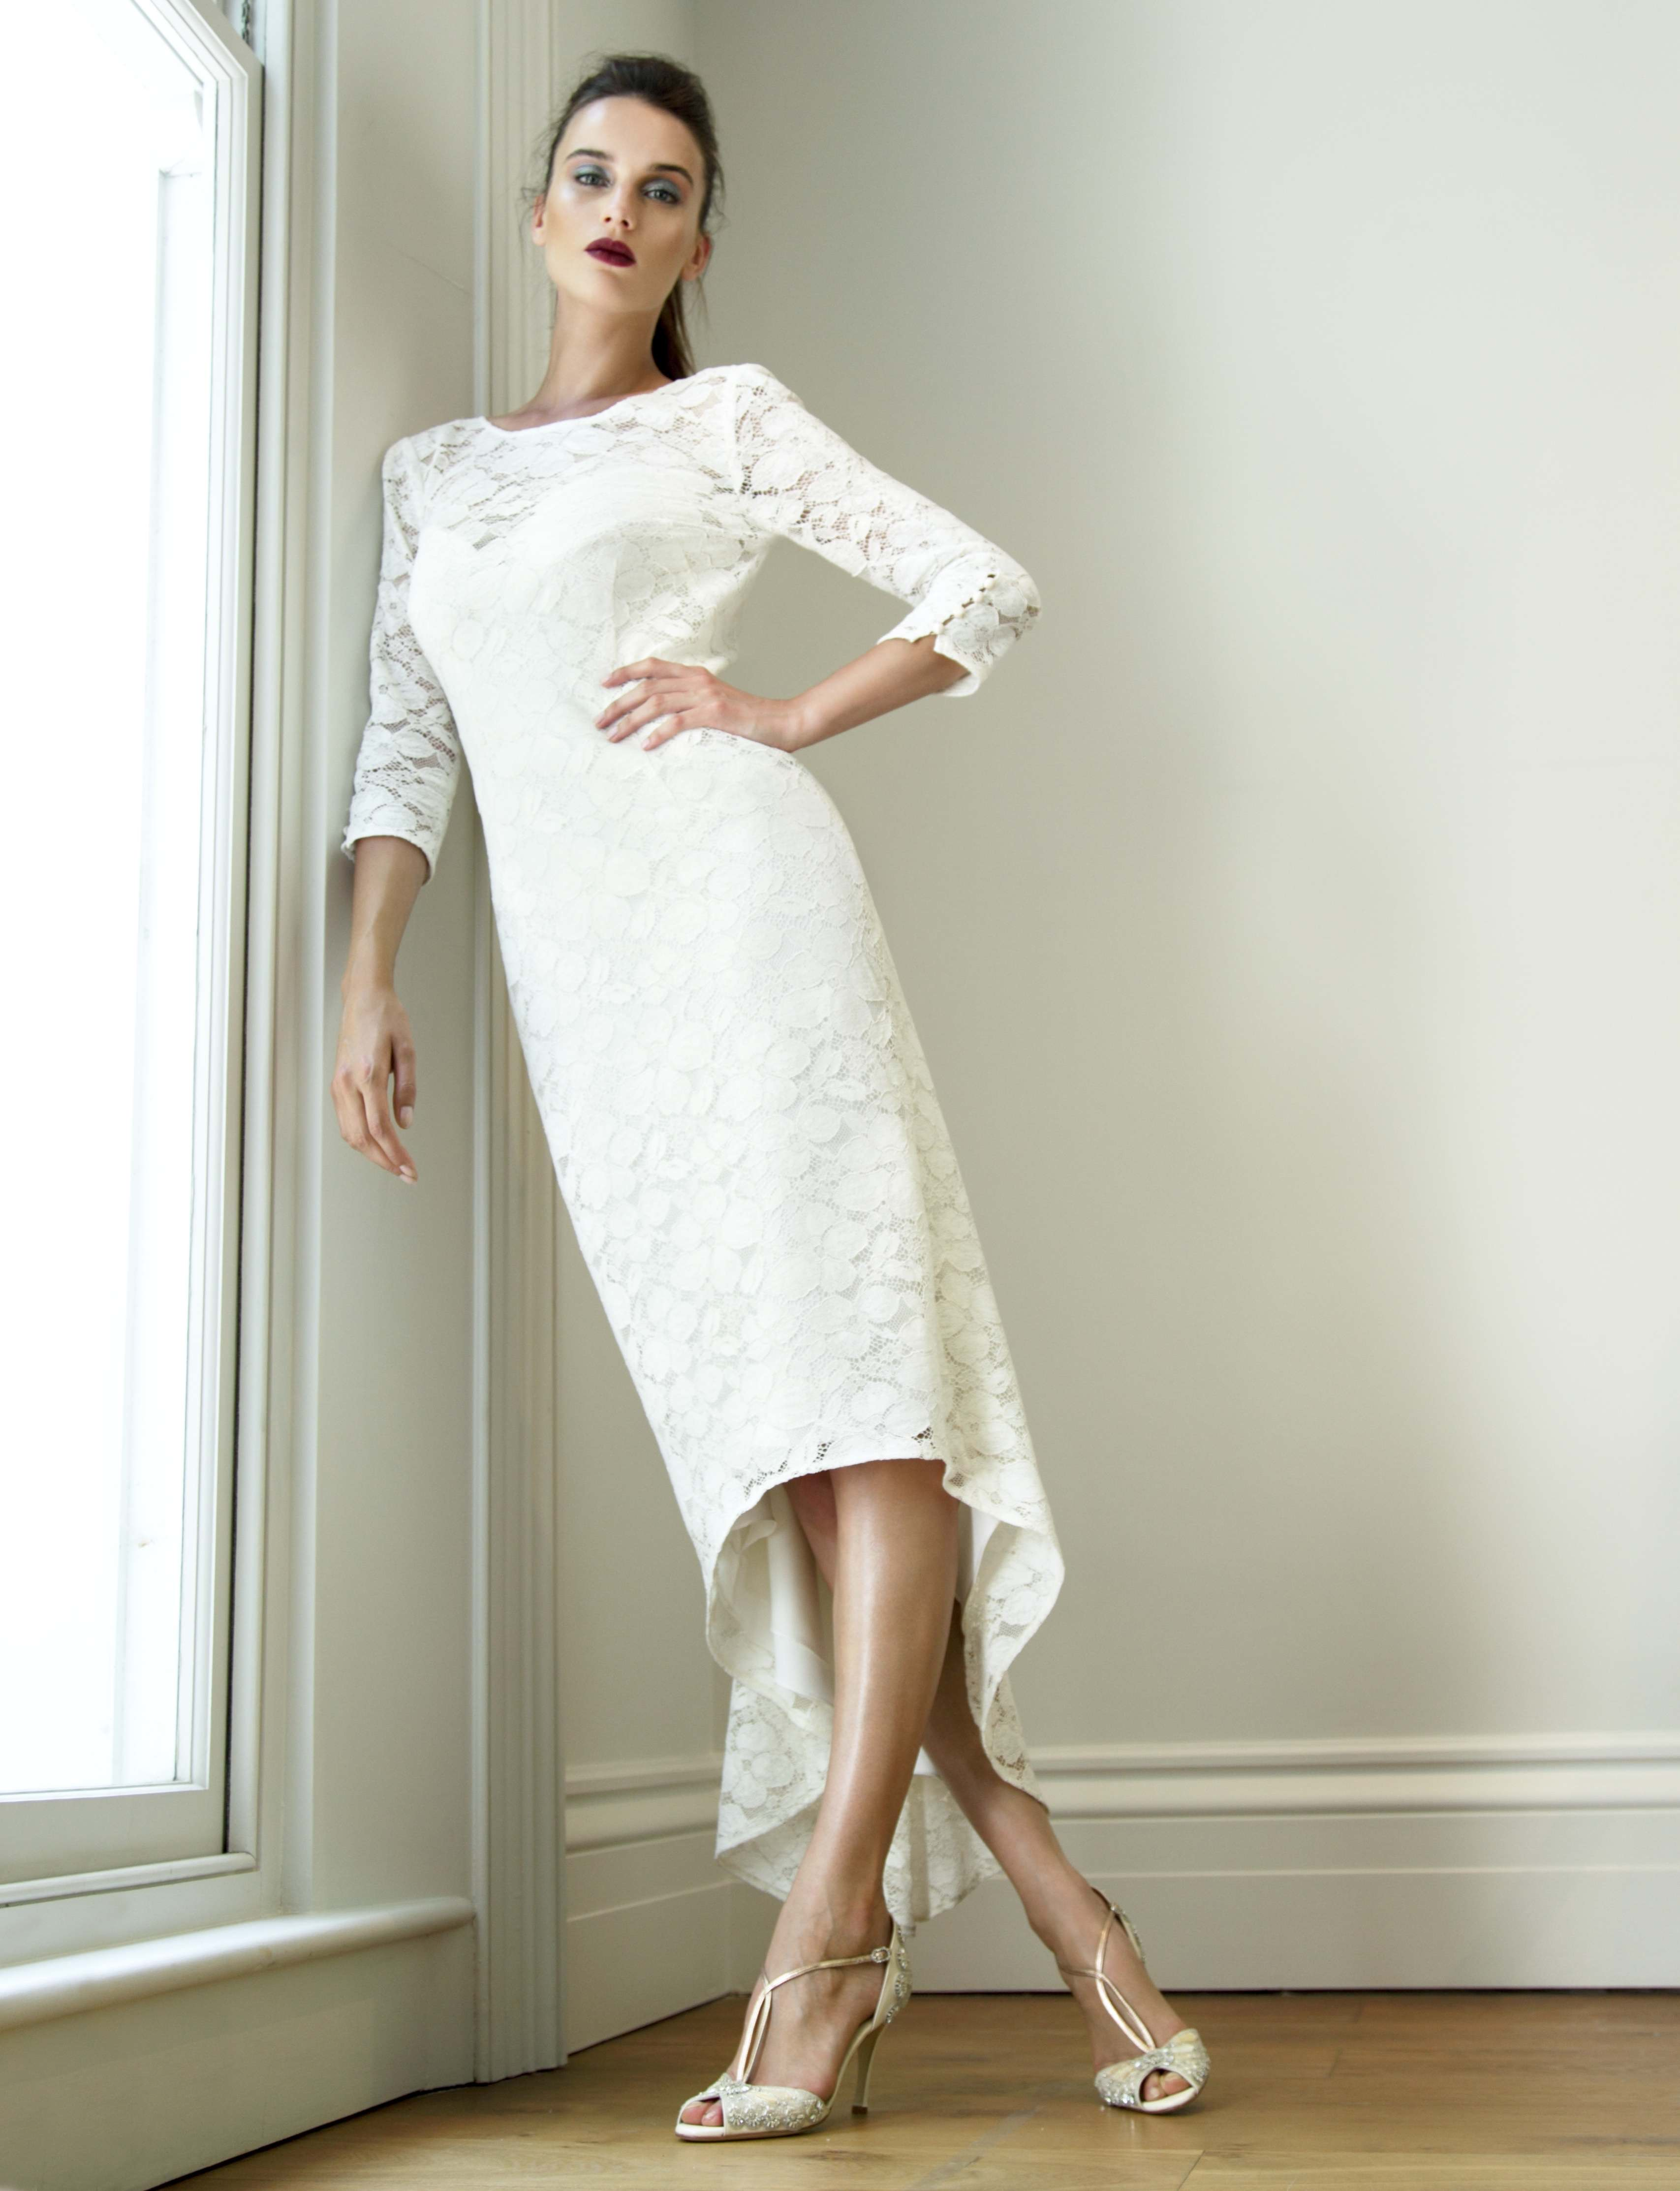 New to launch the ultimate lace wedding dress for cool for Registry office wedding dress